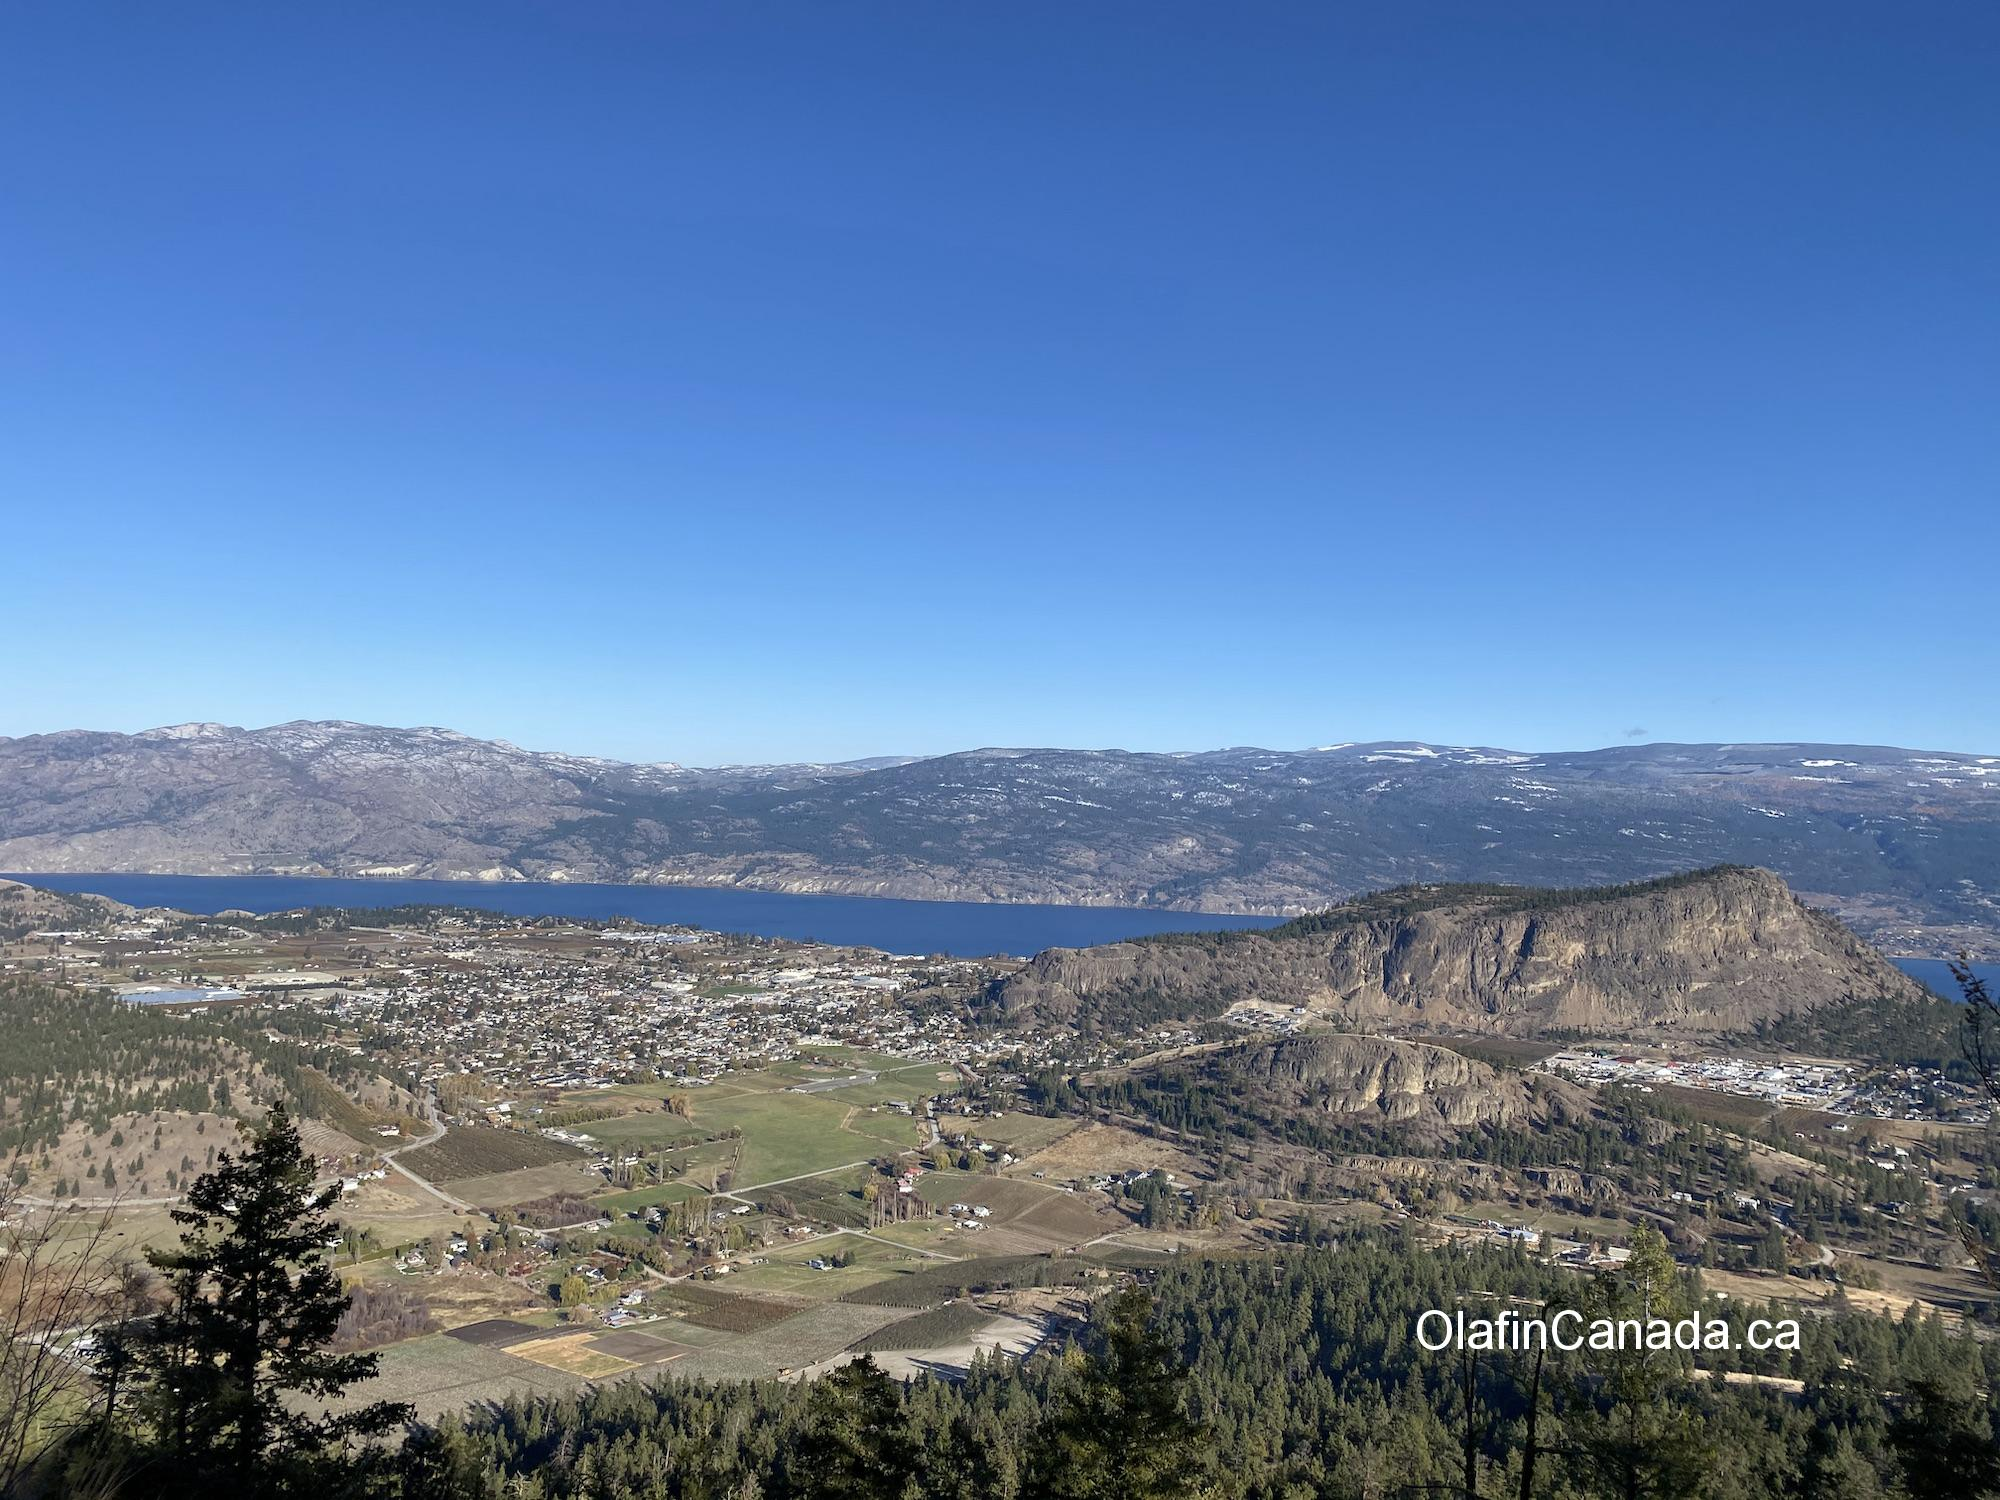 View over Summerland BC with Giants Head mountain on the right #olafincanada #britishcolumbia #discoverbc #okanaganvalley #summerland #giantshead #sunshine